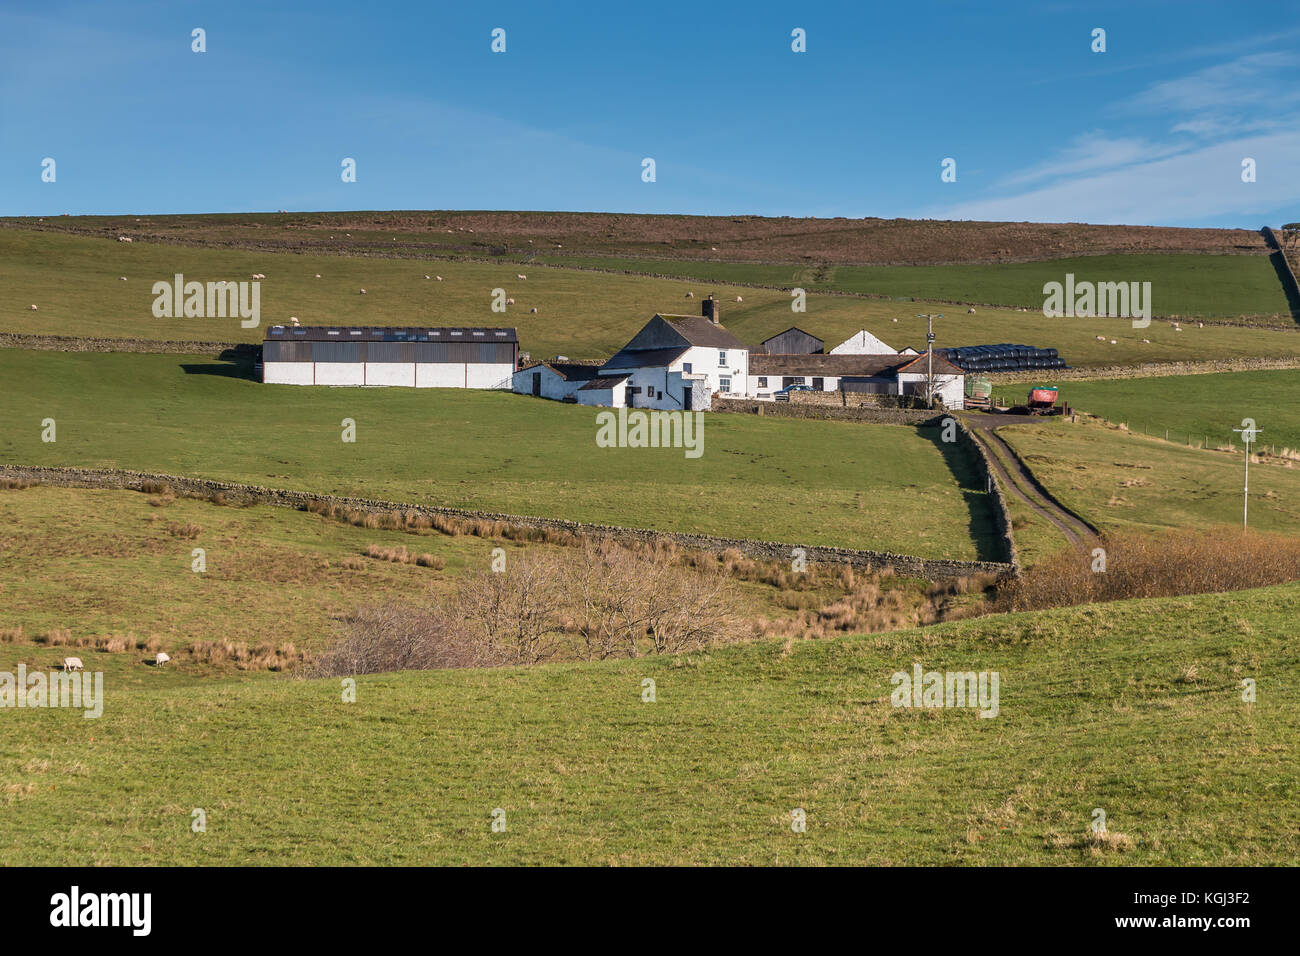 North Pennines Landscape, Ashdub Farm, Ettersgill, Upper Teesdale in strong autumn sunshine under a clear blue sky - Stock Image